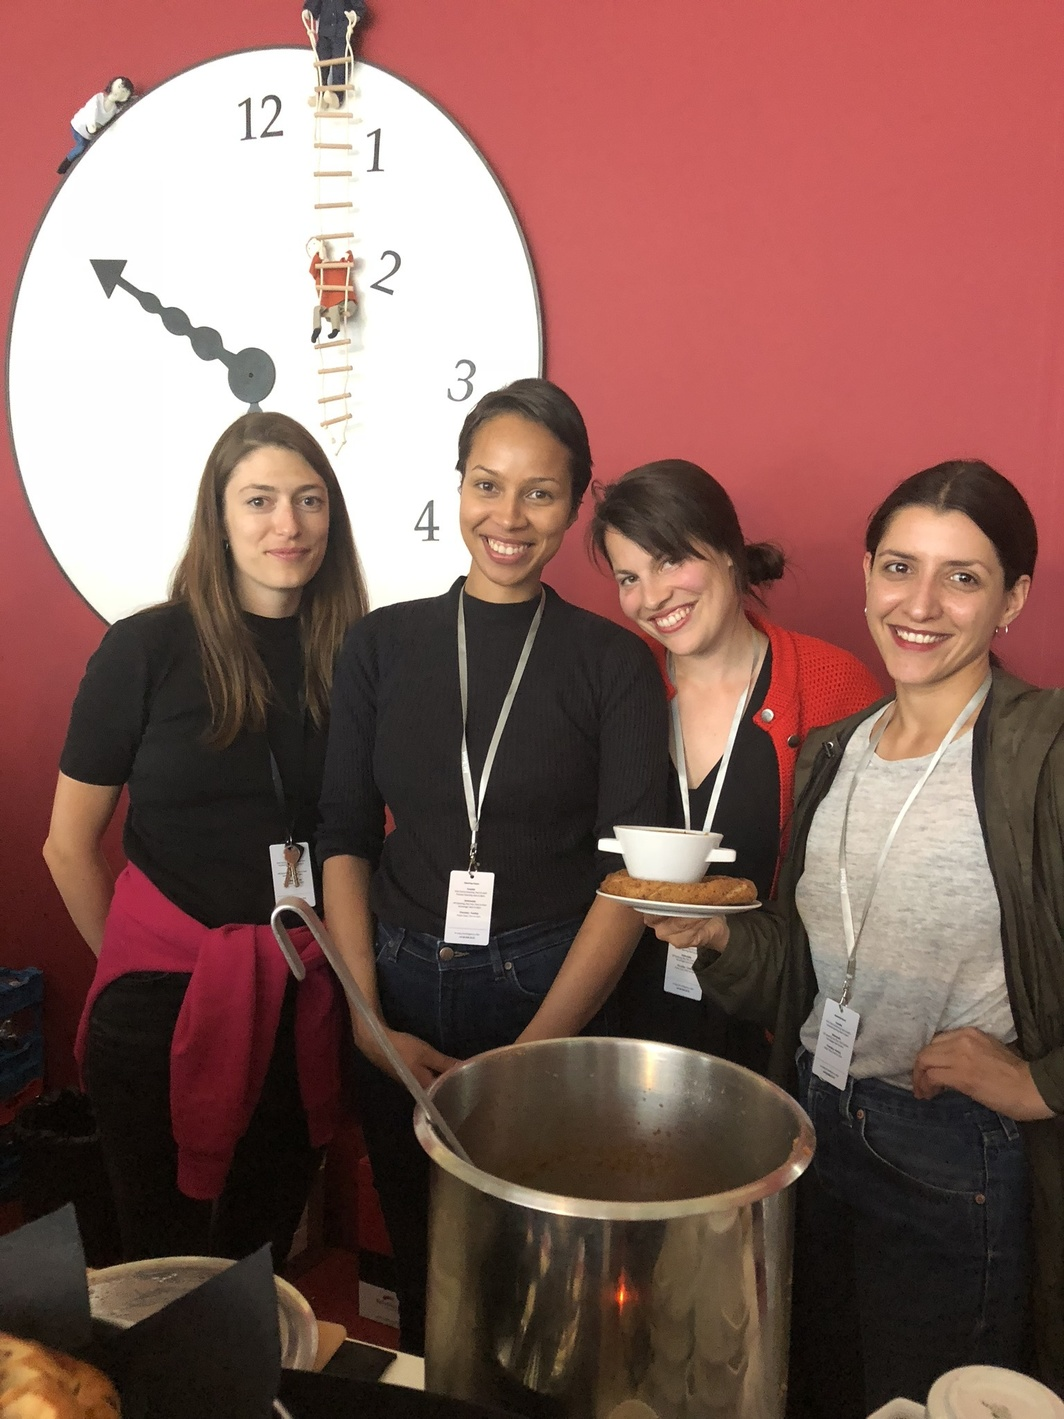 Laura Stocker, Fatuma Osman, artist Hannah Weinberger, and Judith Kakon.